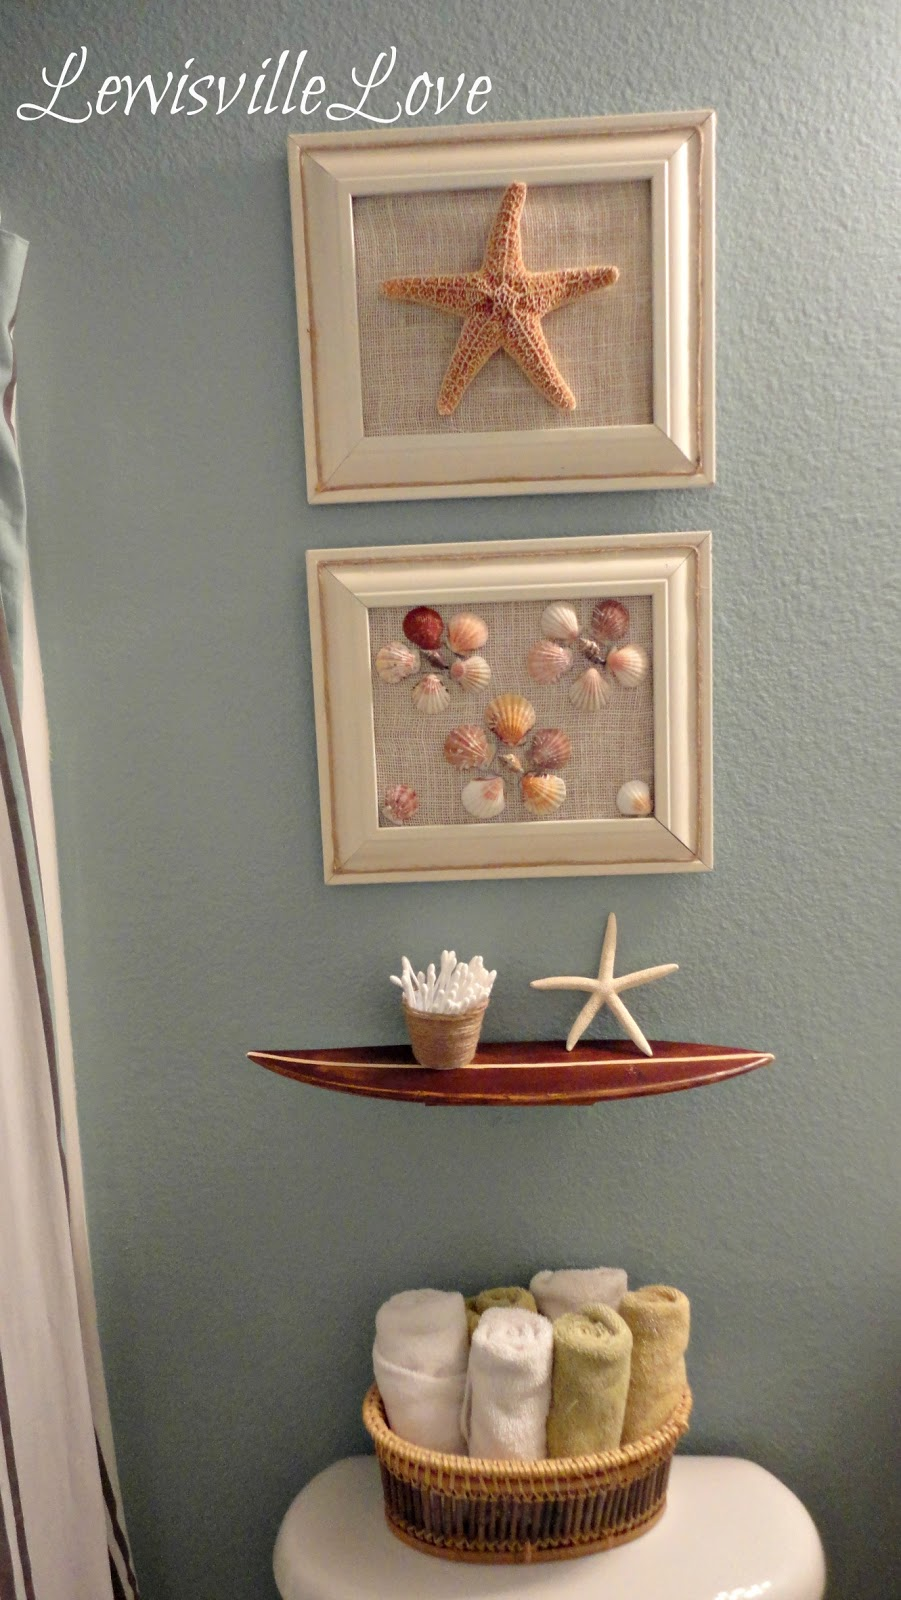 Lewisville love beach theme bathroom reveal for Bathroom ornament ideas